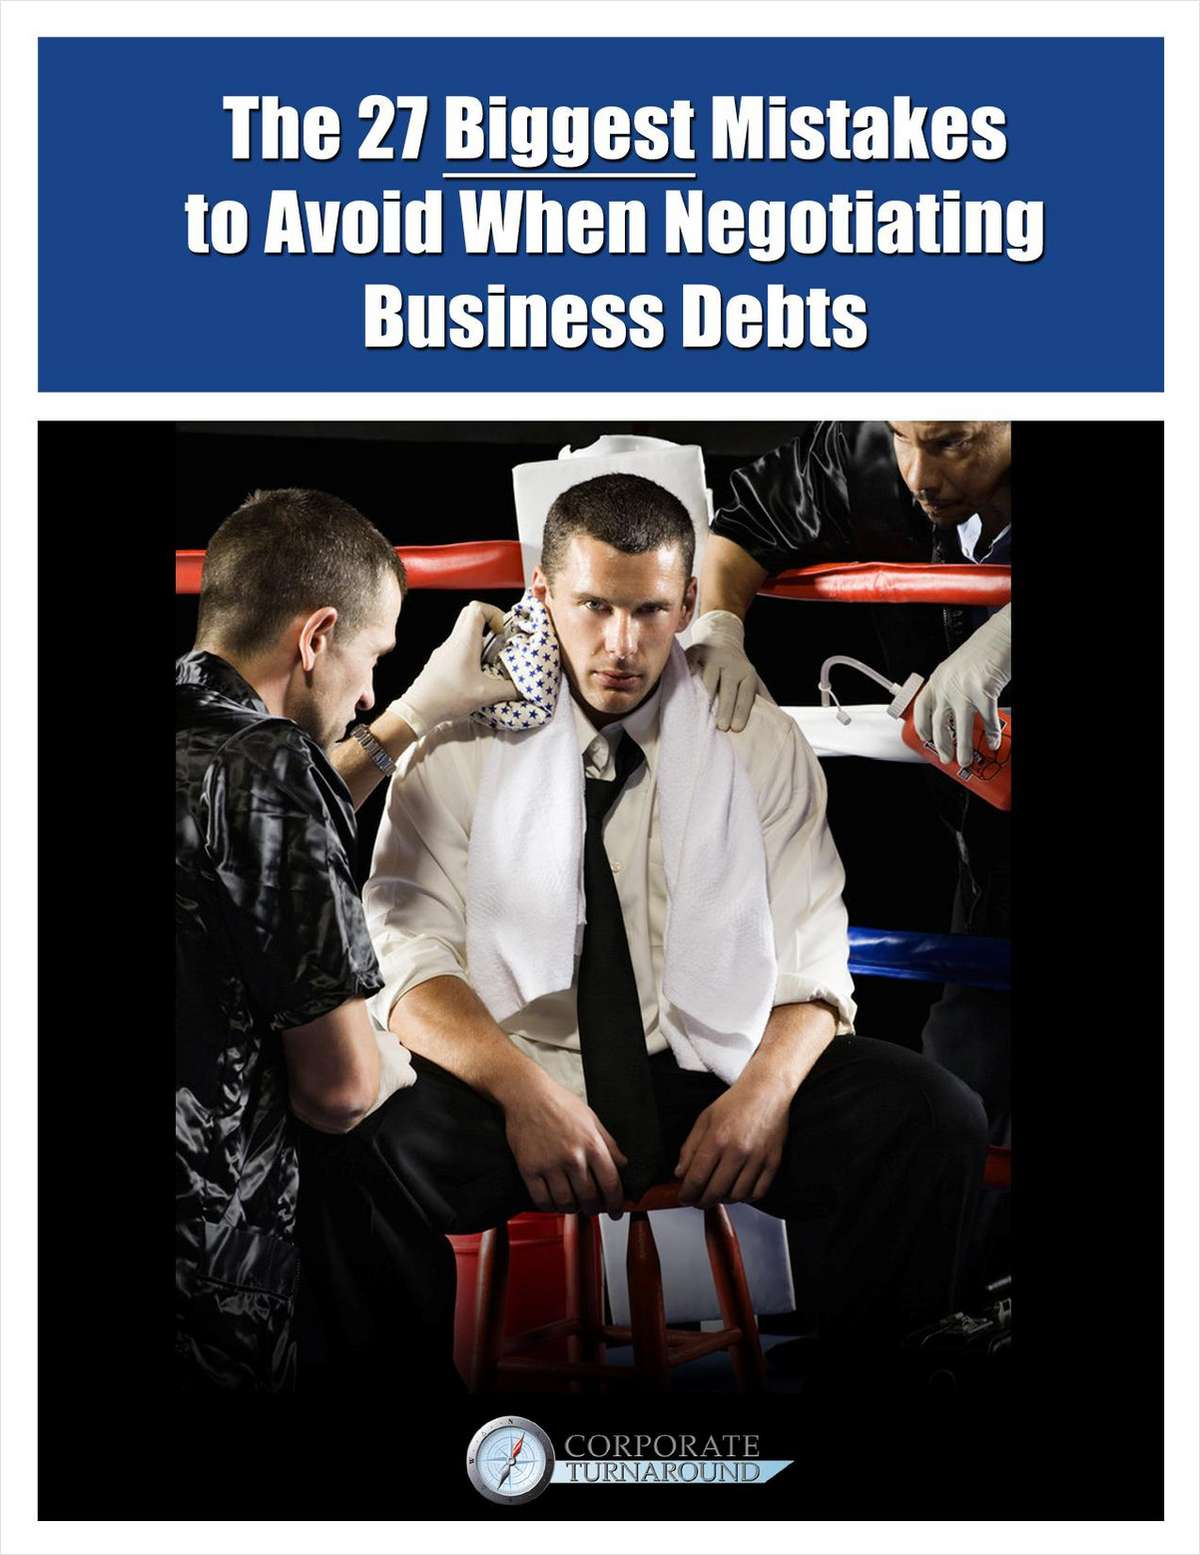 How to Avoid Mistakes When Negotiating Business Debts